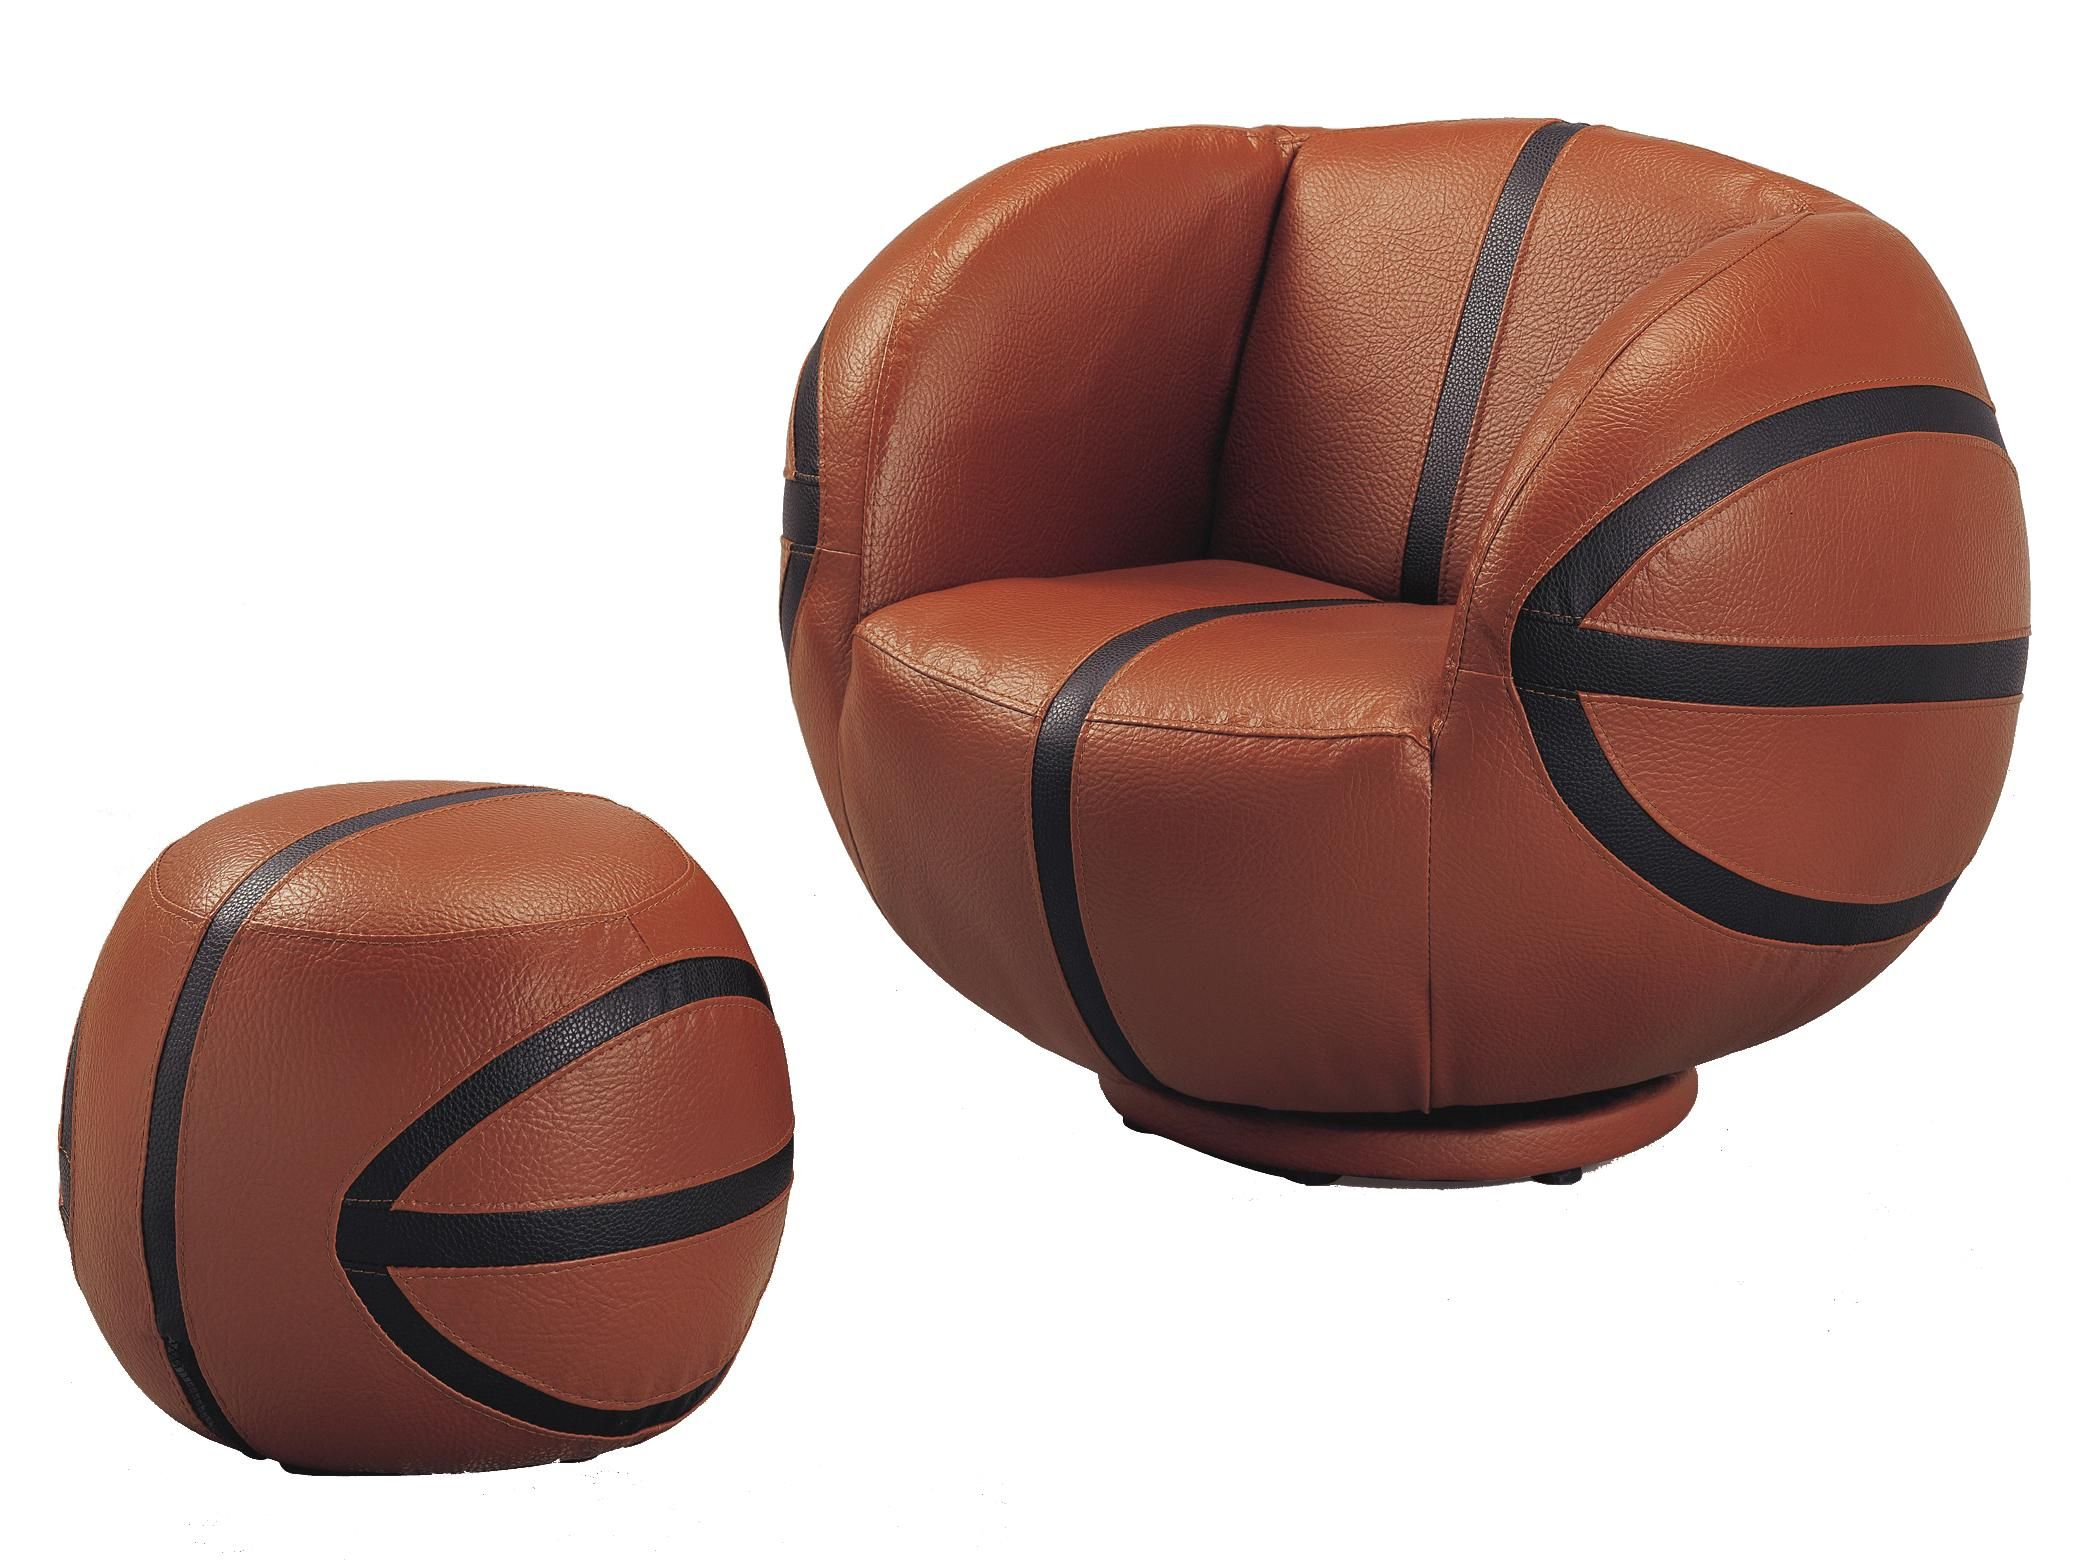 Basketball Chairs Kids Sport Chairs Basketball Chair Kids Rooms In 2019 Chair